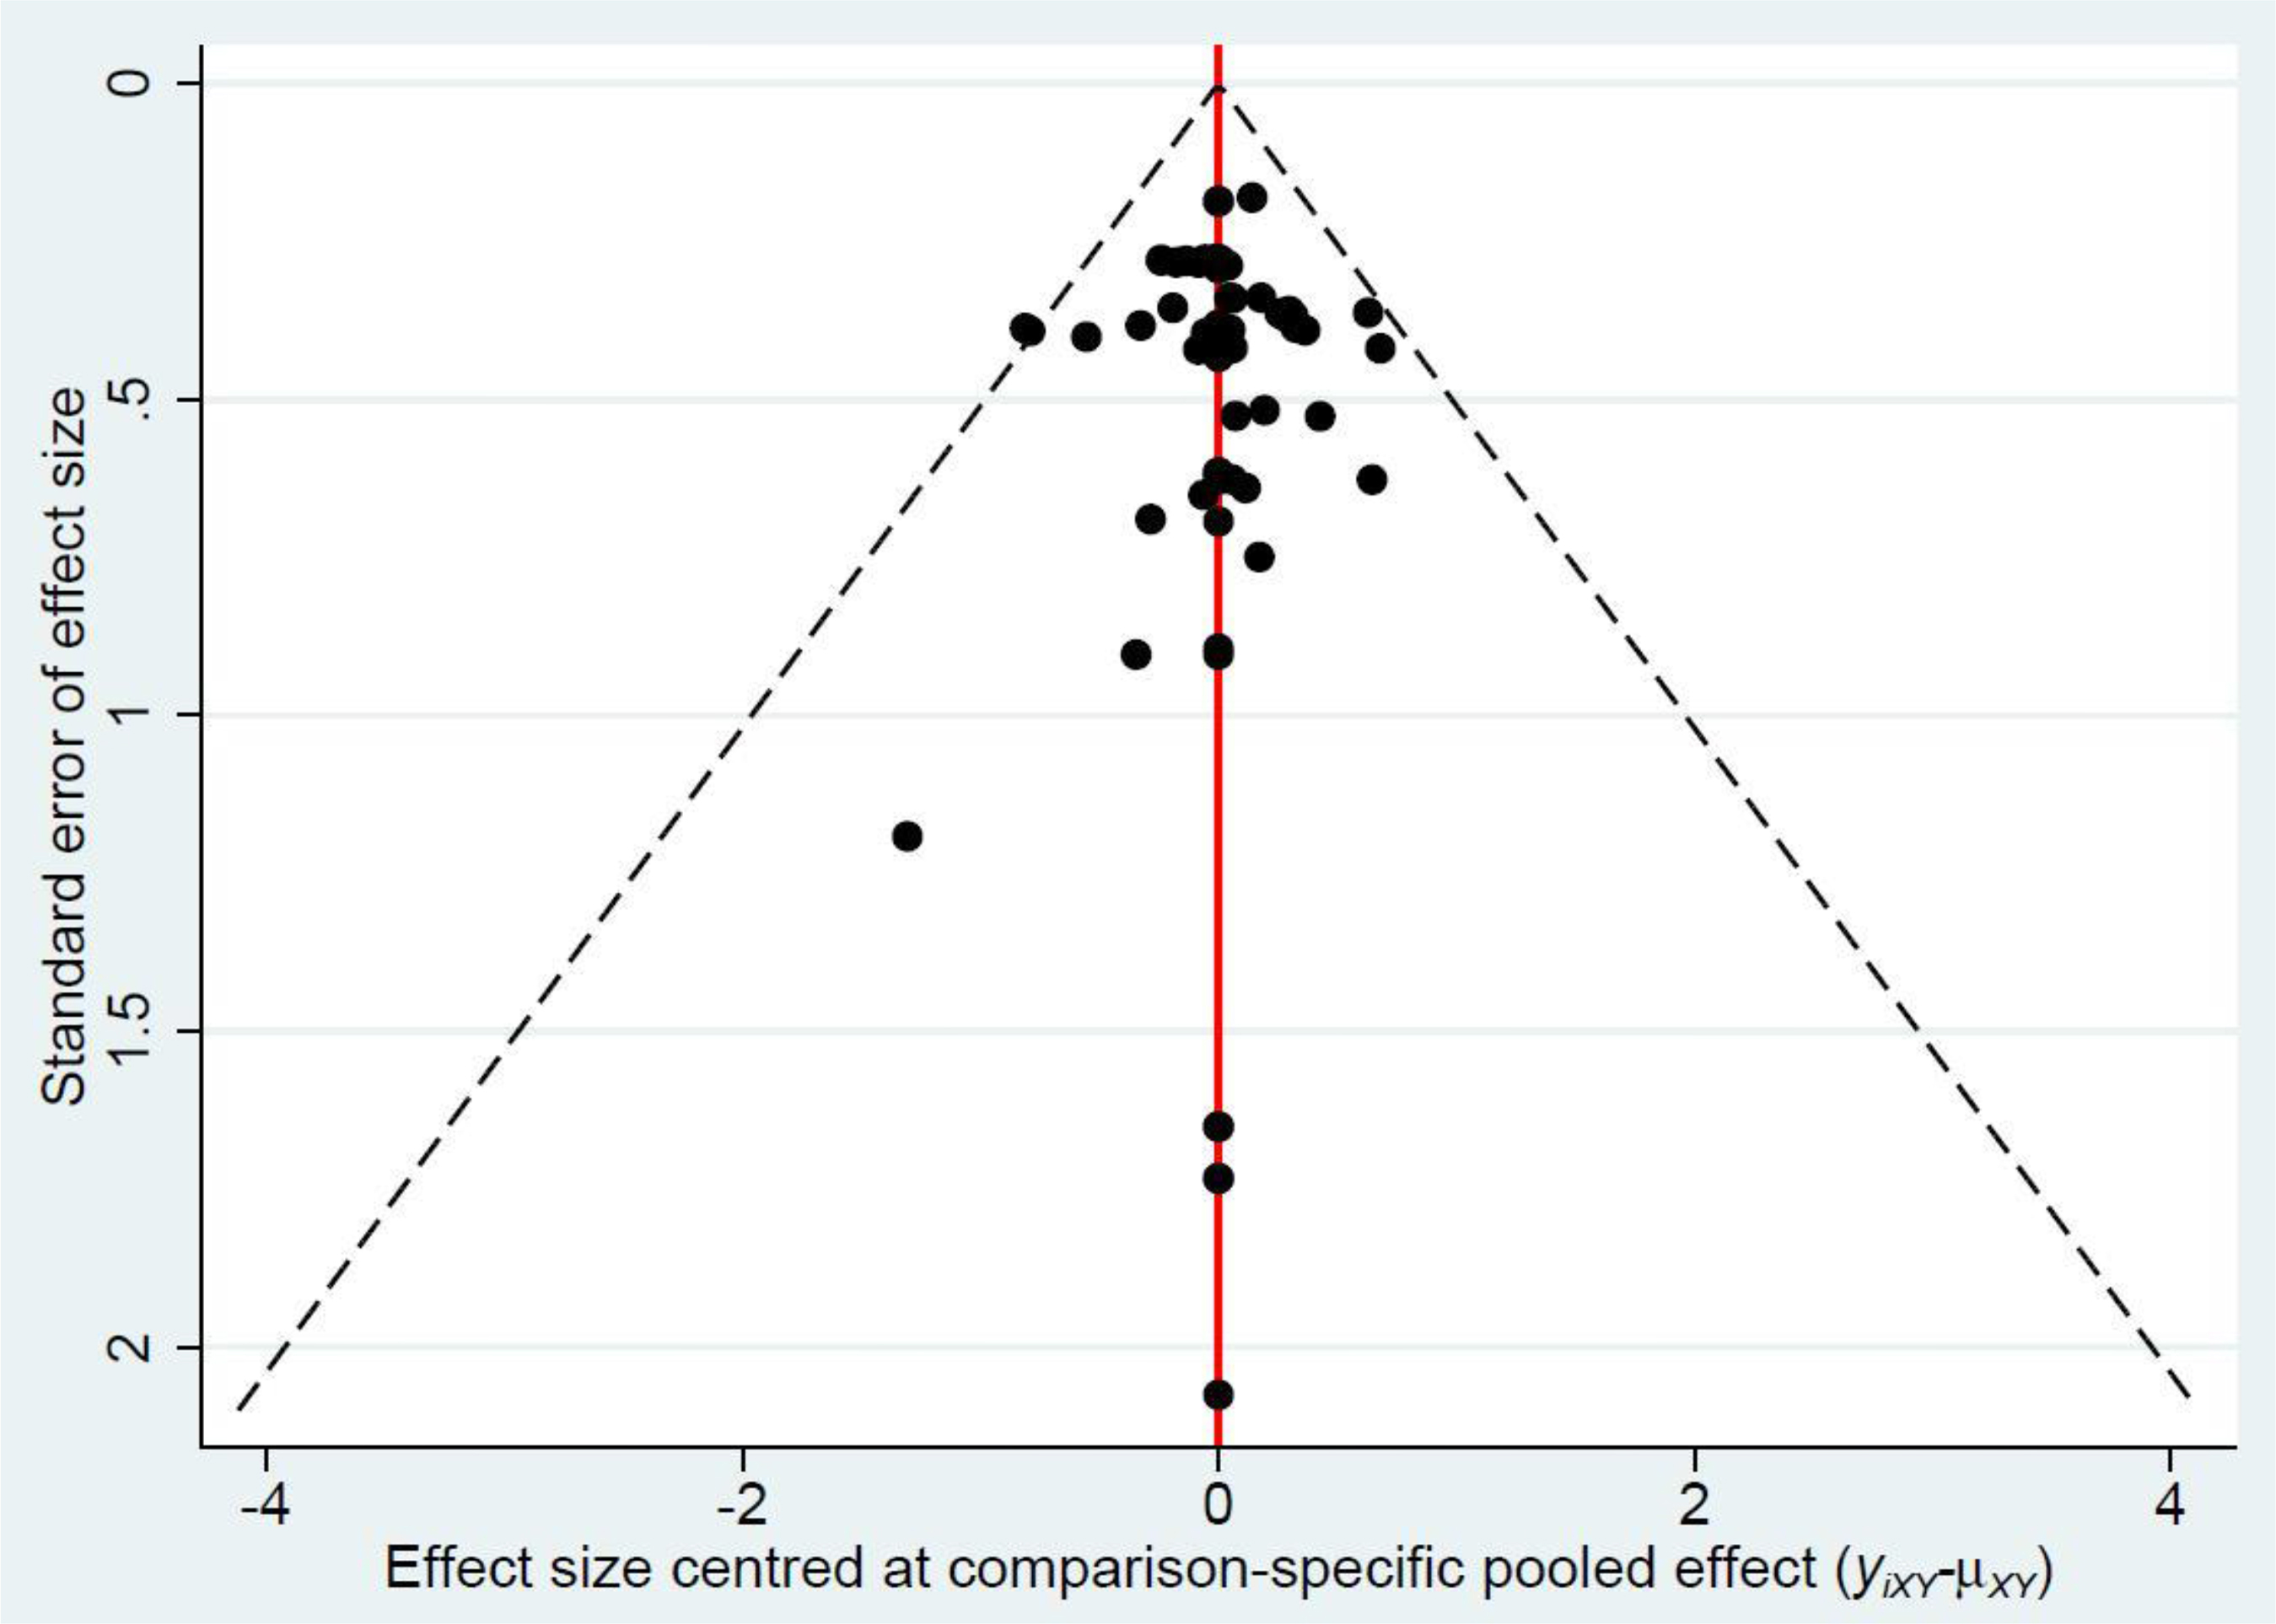 The funnel plot in prediction refractive error within ±0.50 diopters.